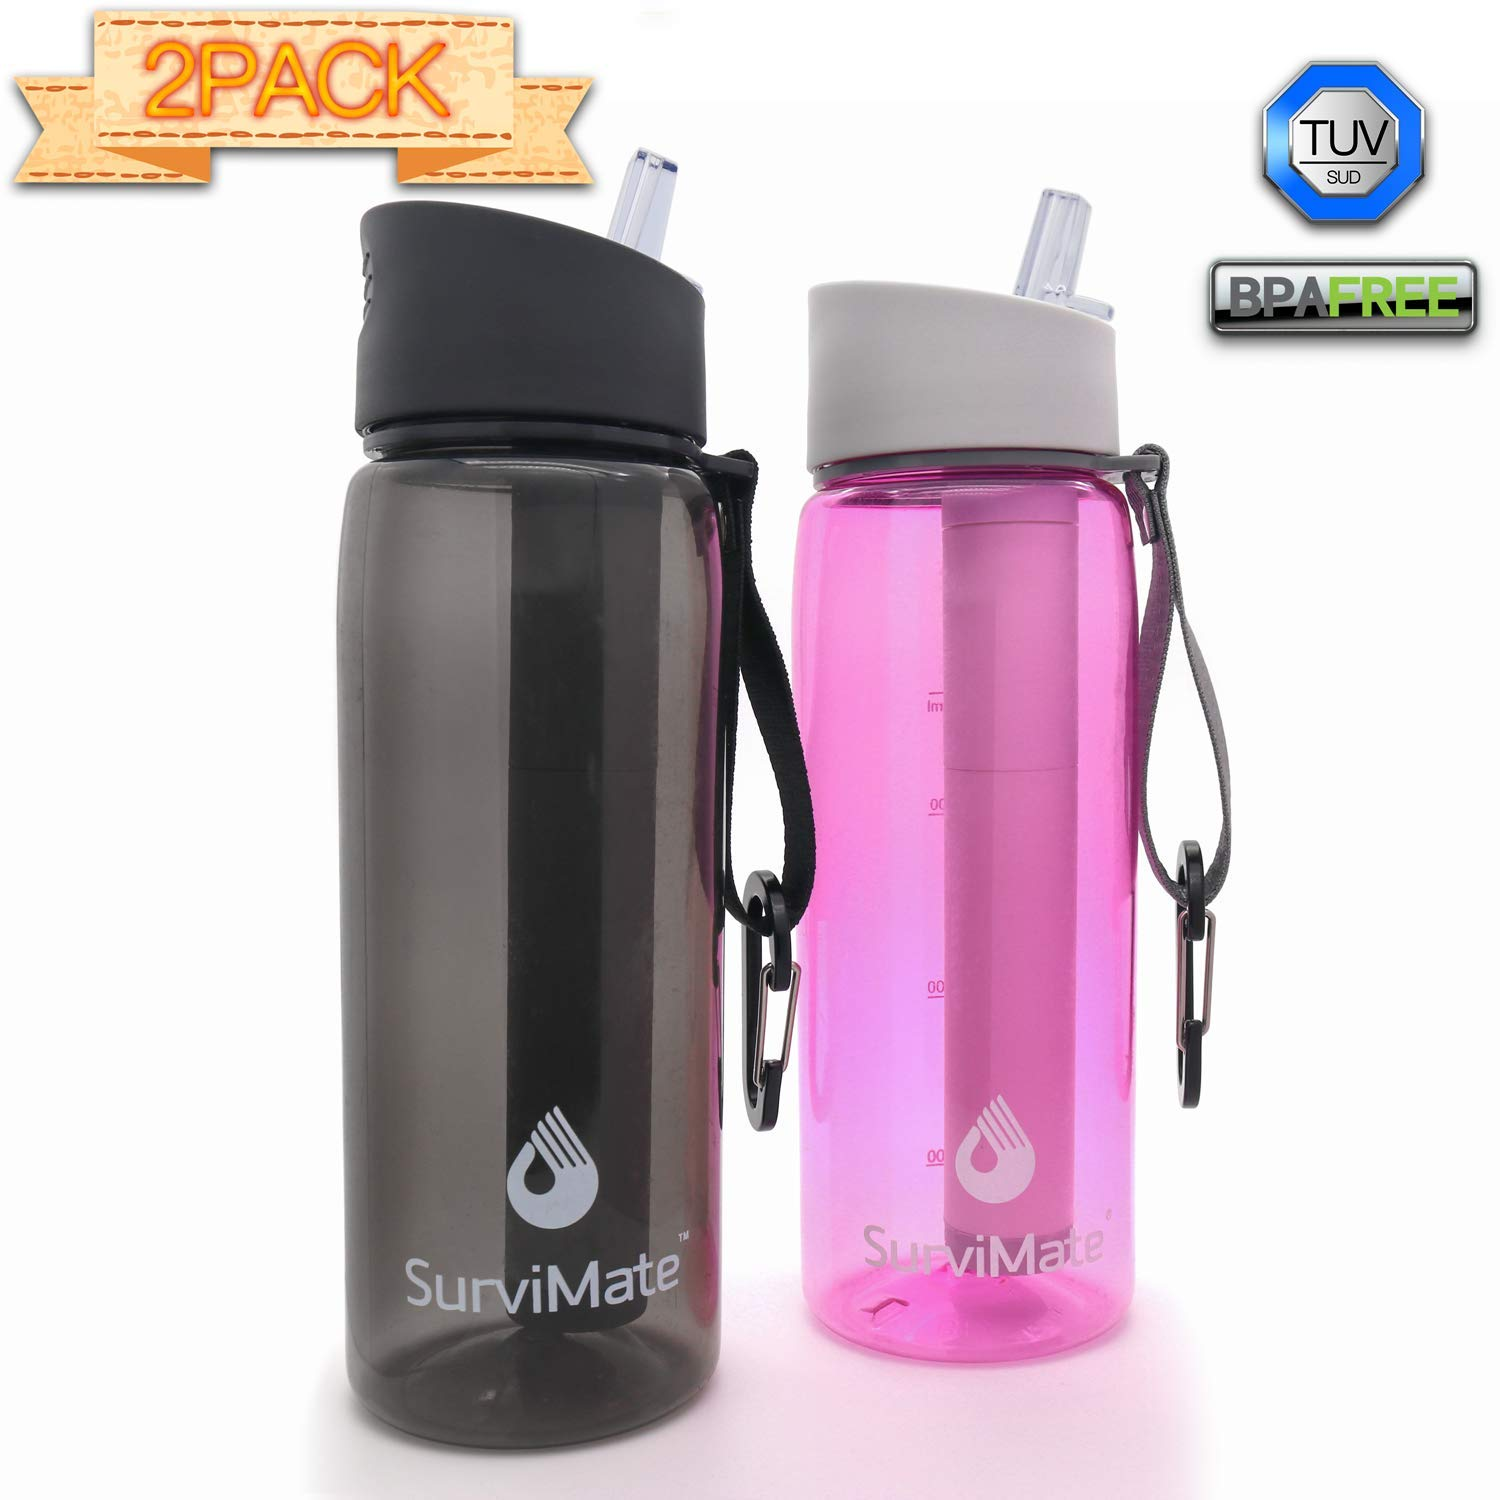 SurviMate Filtered Water Bottle for Camping, Hiking, Backpacking and Travel, BPA Free with 4-Stage Intergrated Filter Straw (Black-Pink) by SurviMate